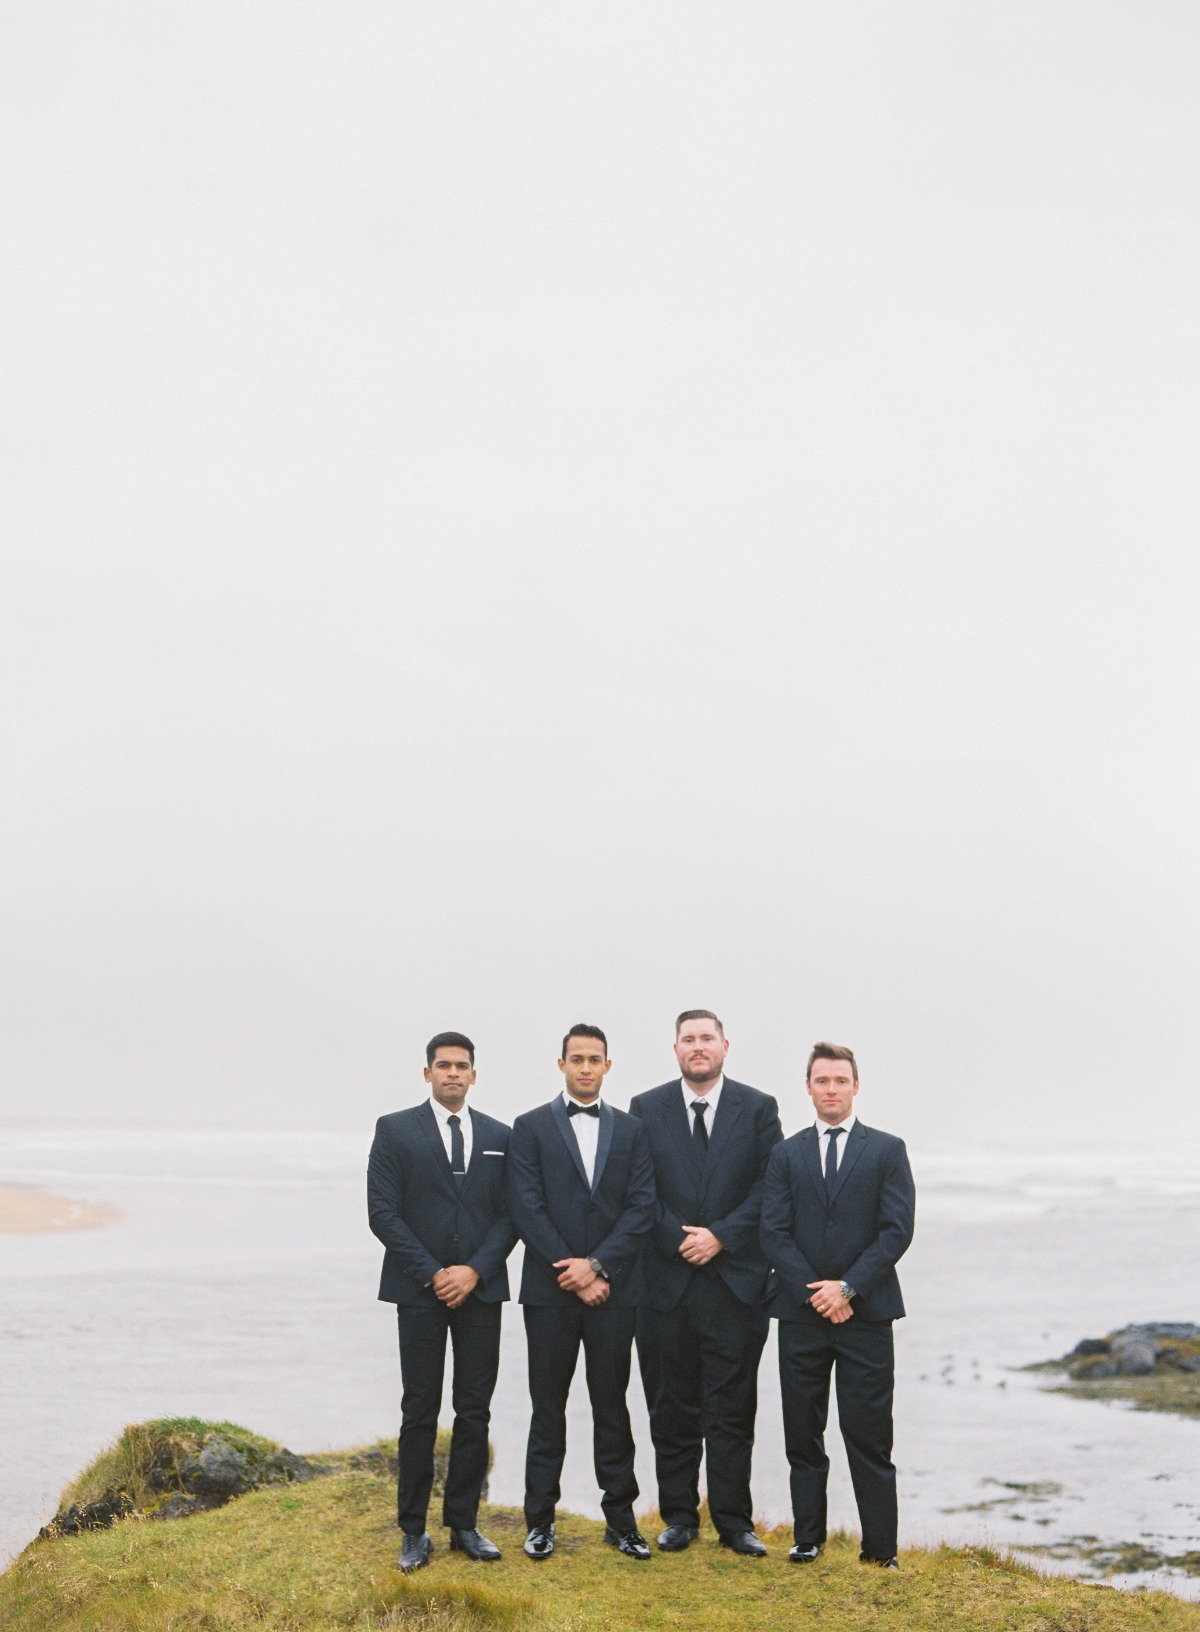 Groomsmen at Iceland destination wedding